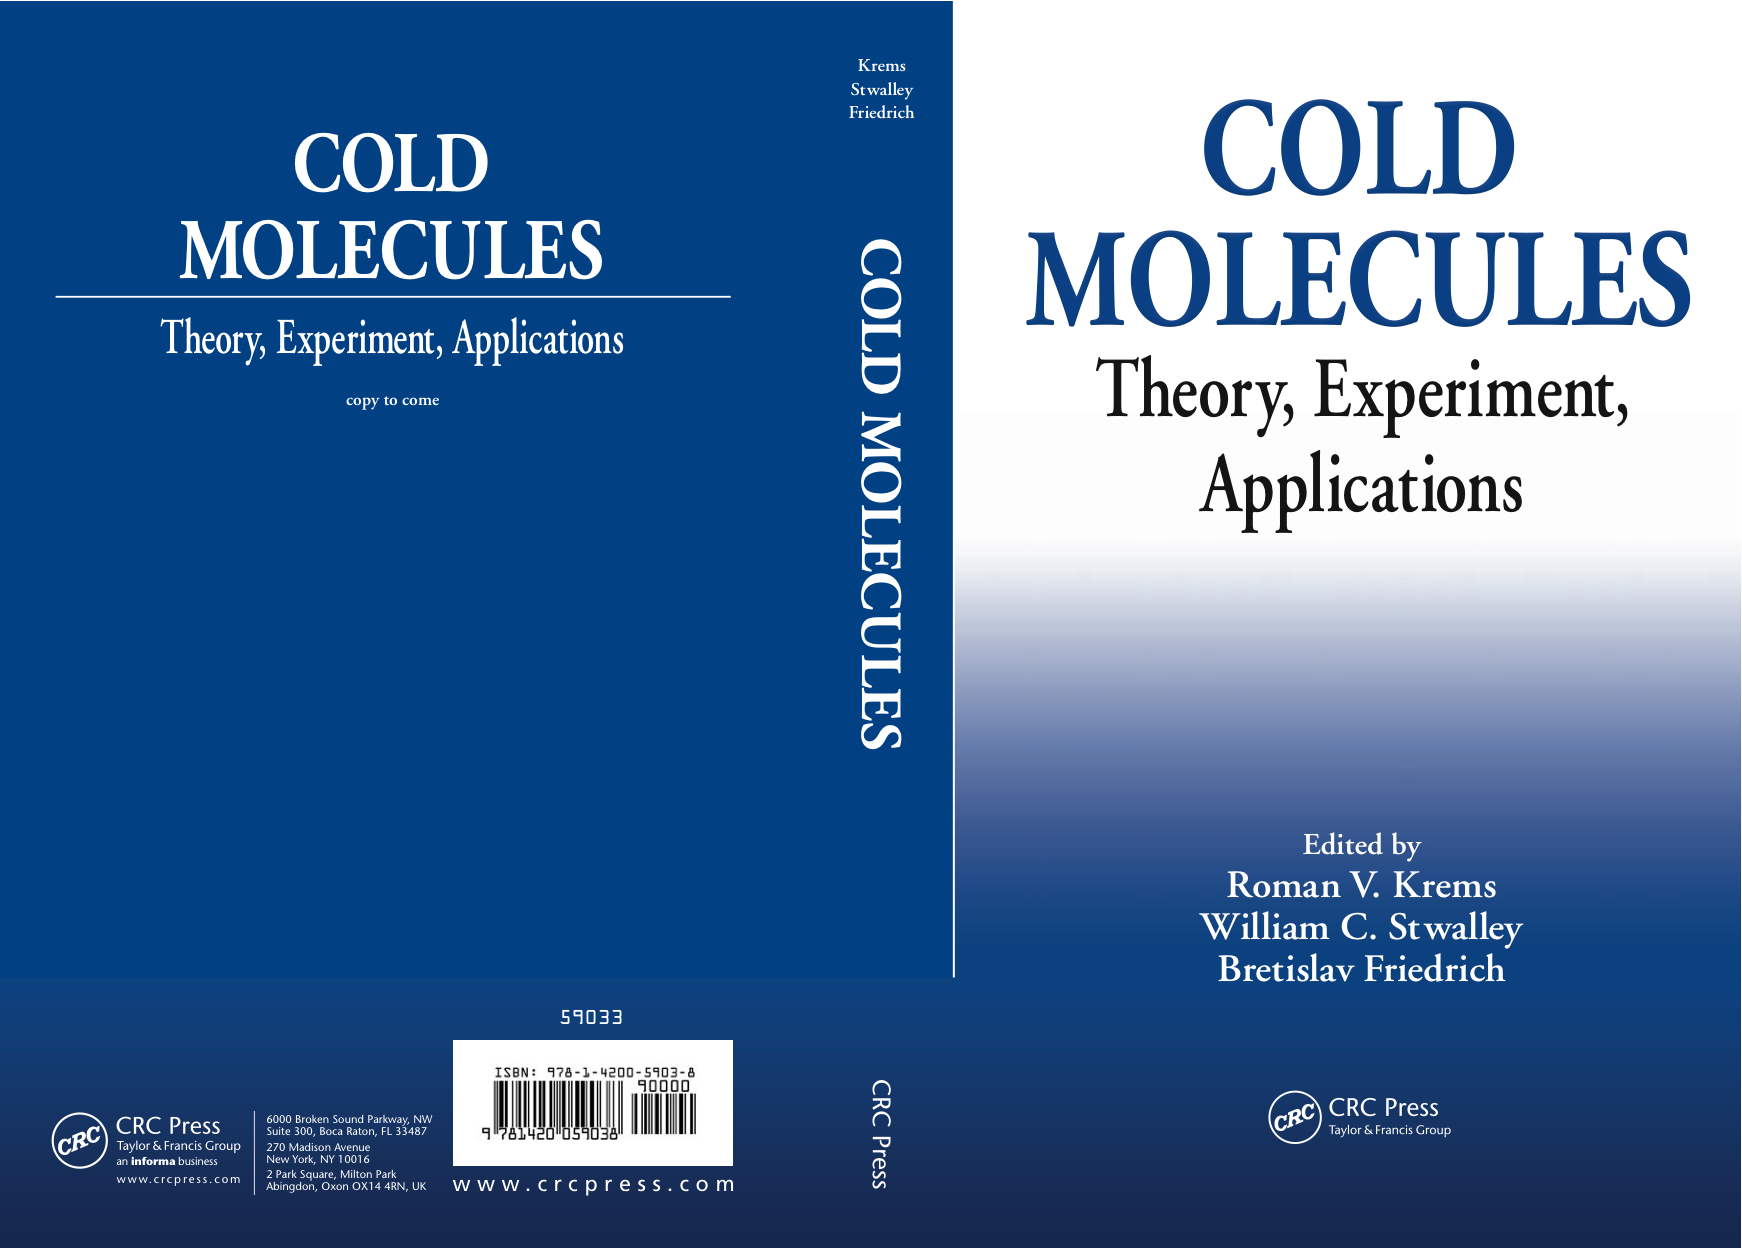 Book: Cold Molecules: Theory, Expriment, Applications